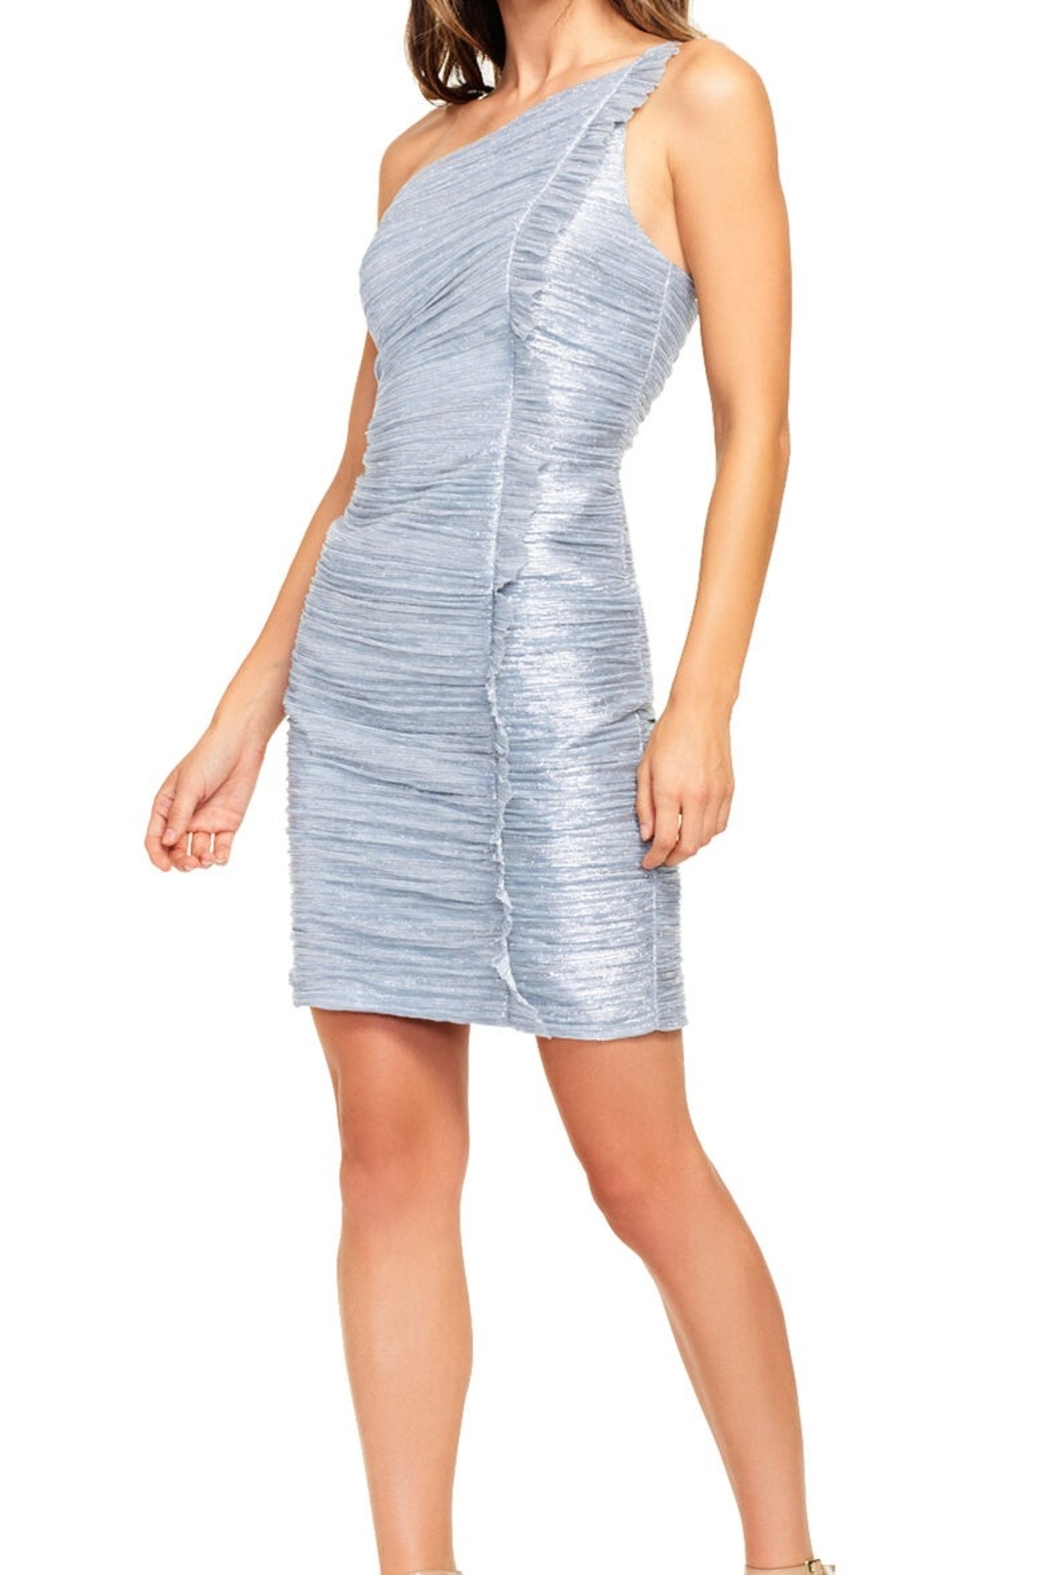 Aidan Mattox Metallic Knit One Shoulder Dress - Front Cropped Image